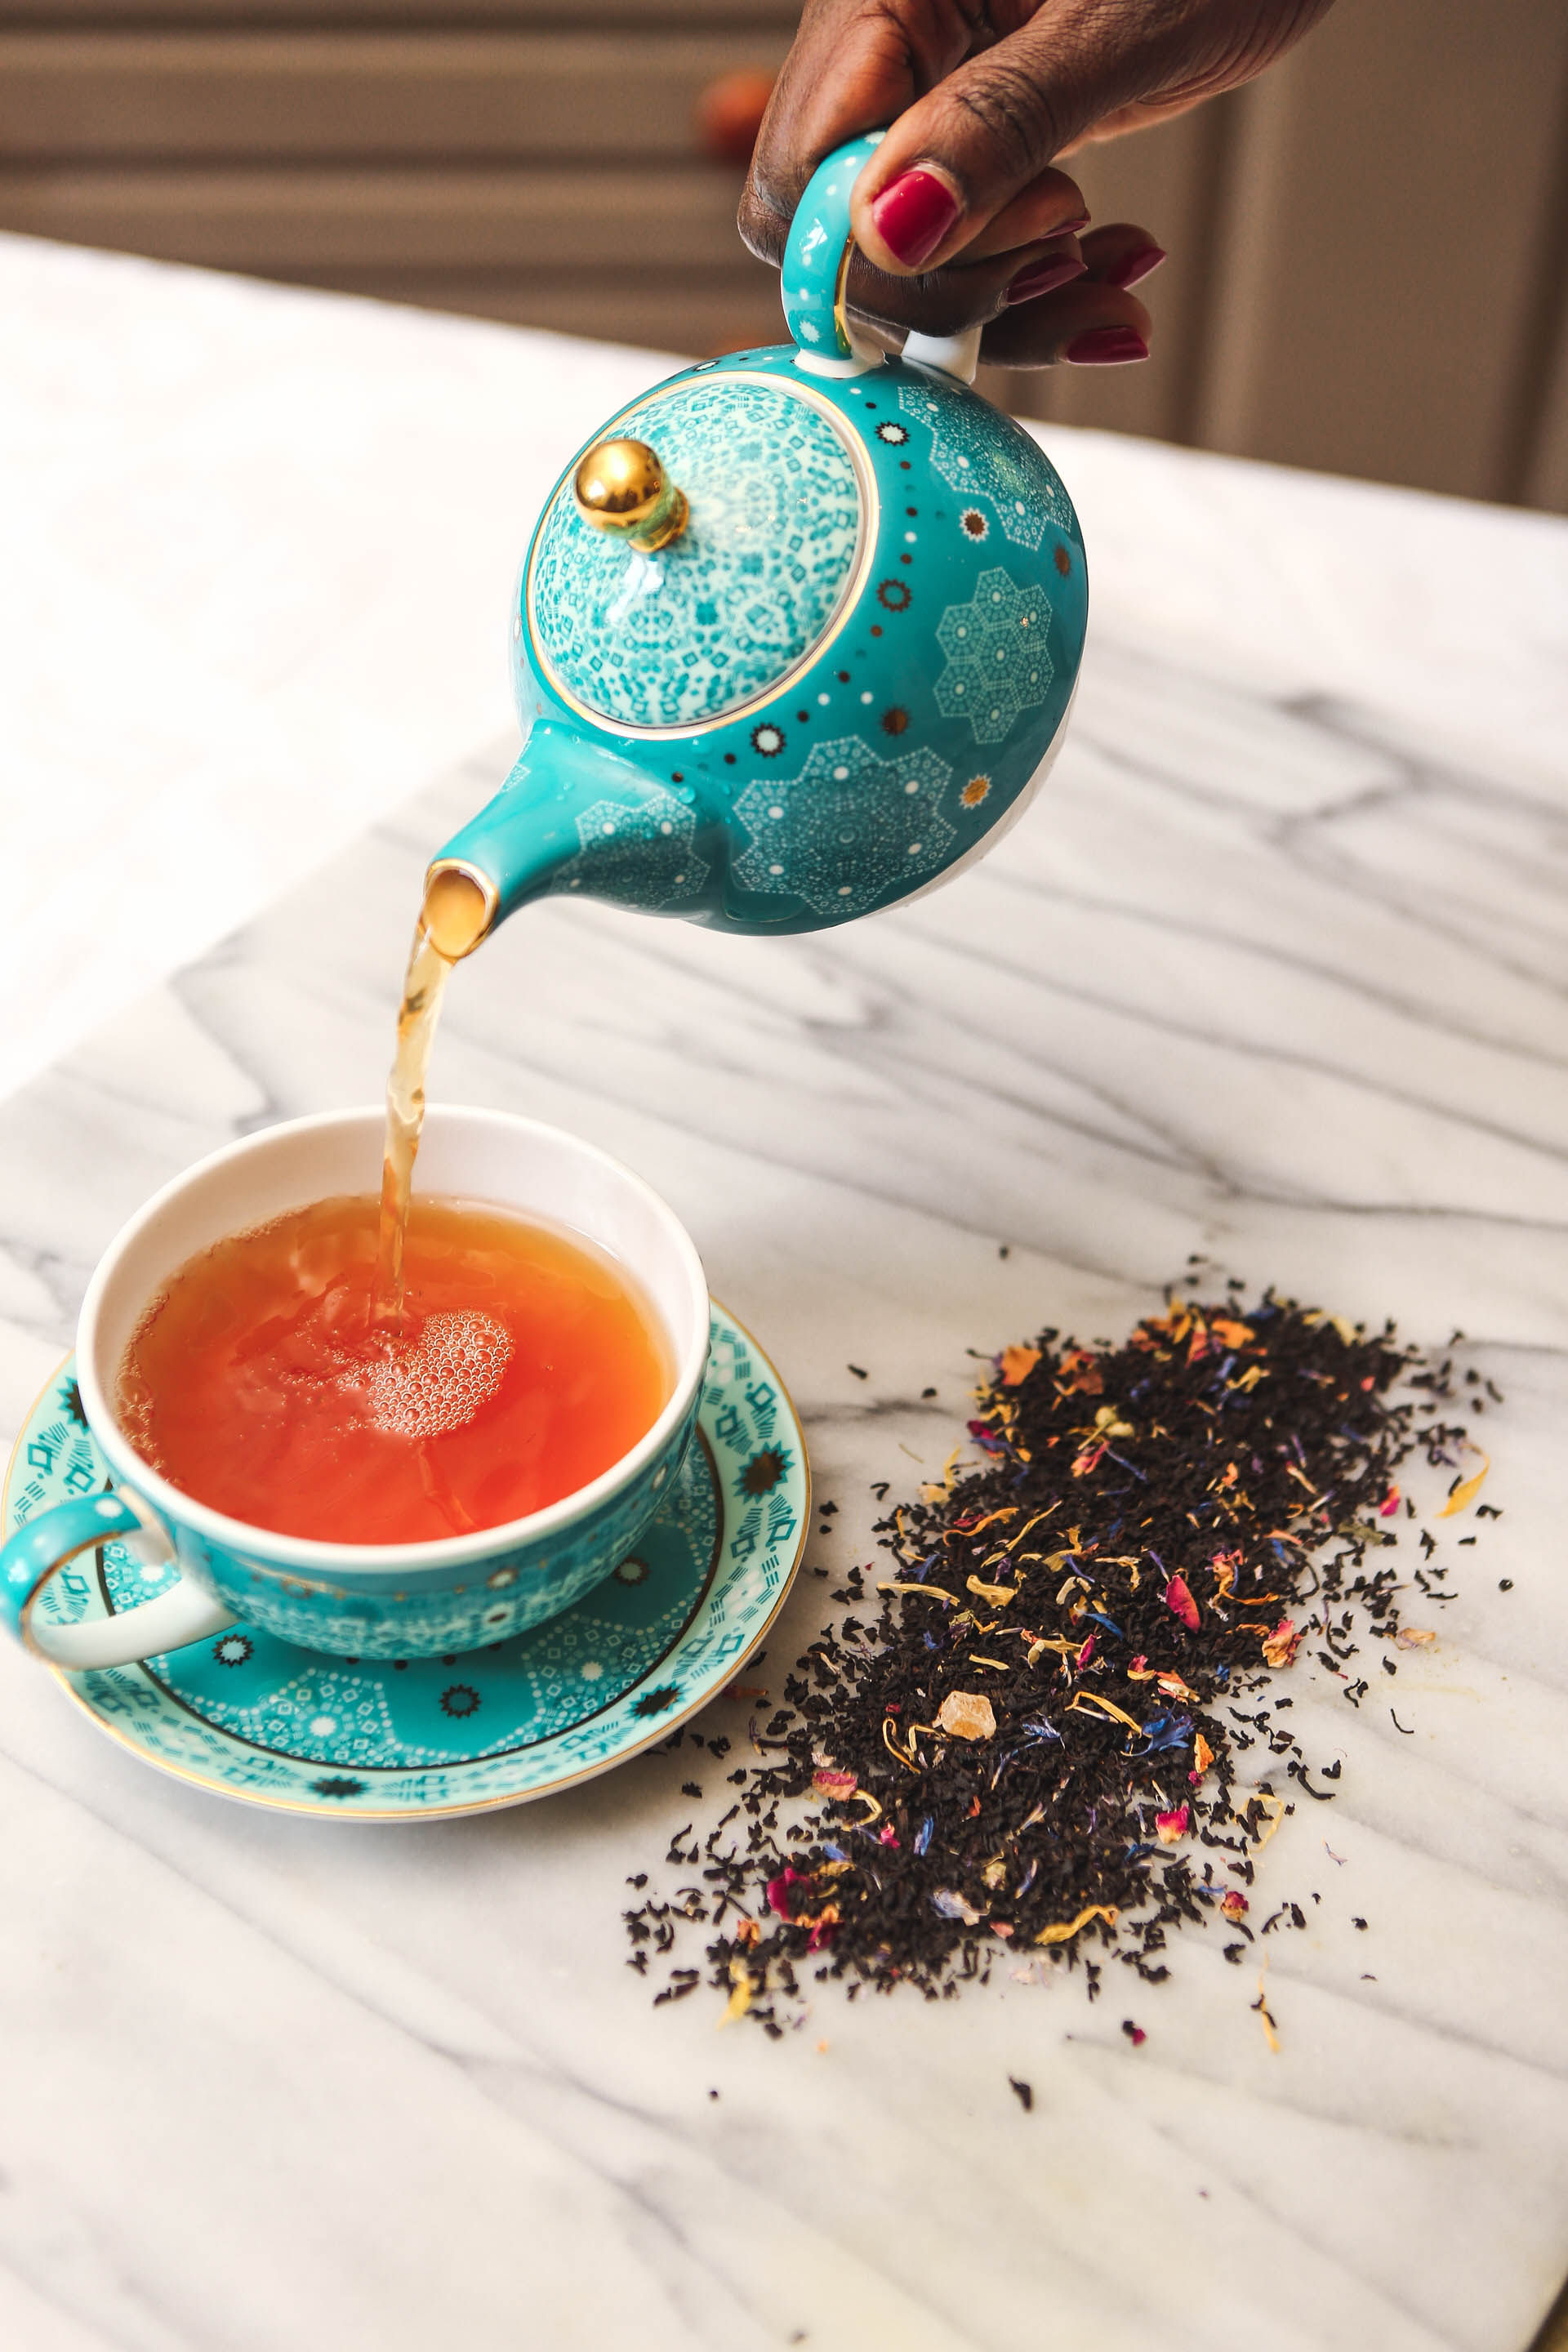 Certified Tea Sommelier Course. Tea 101 - 108.  by Cambridge Tea Academy - drinks-and-tastings in London